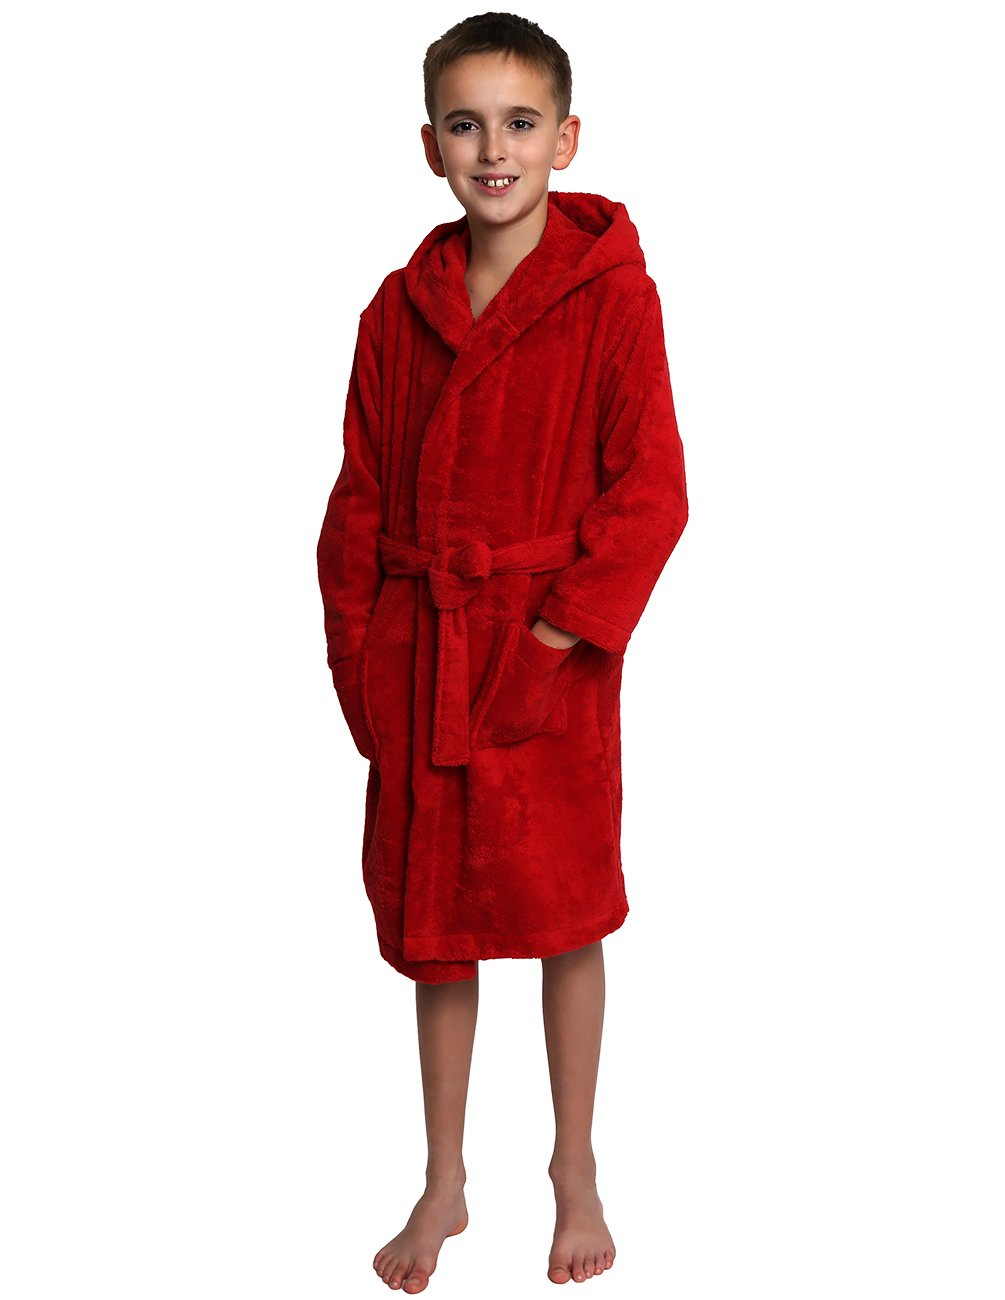 TowelSelections Boys Turkish Cotton Hooded Terry Bathrobe Made in Turkey